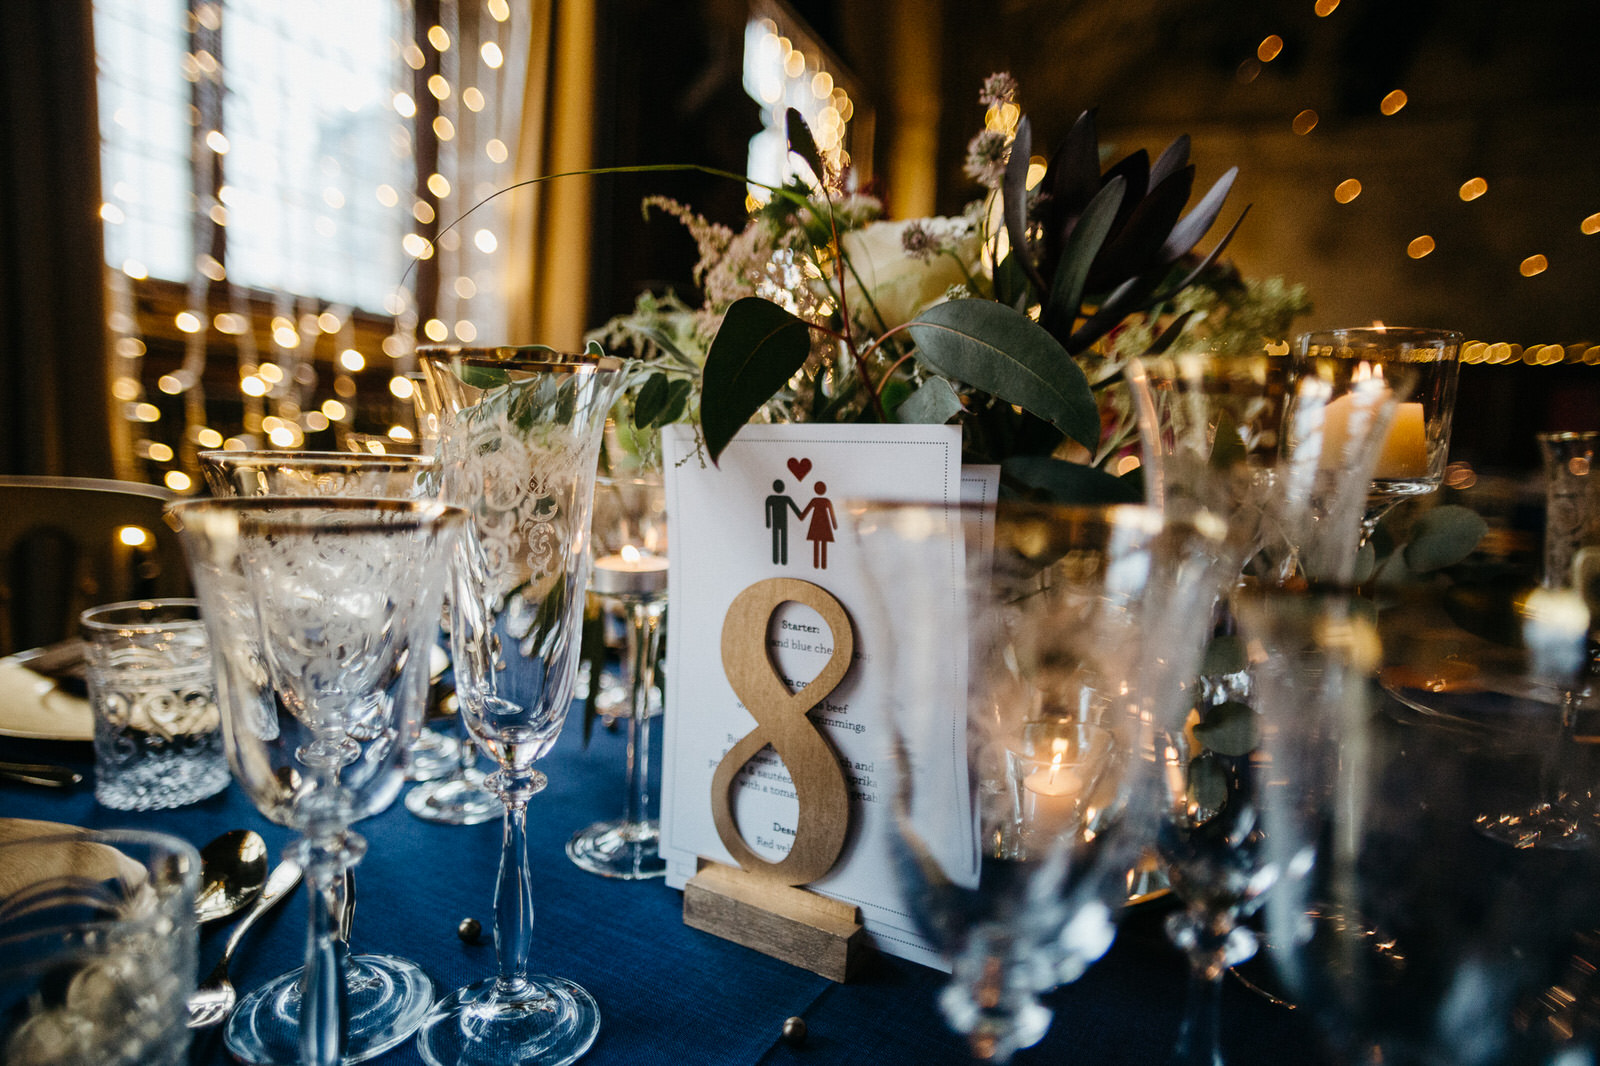 creative table decor details at Battersea Arts Centre wedding